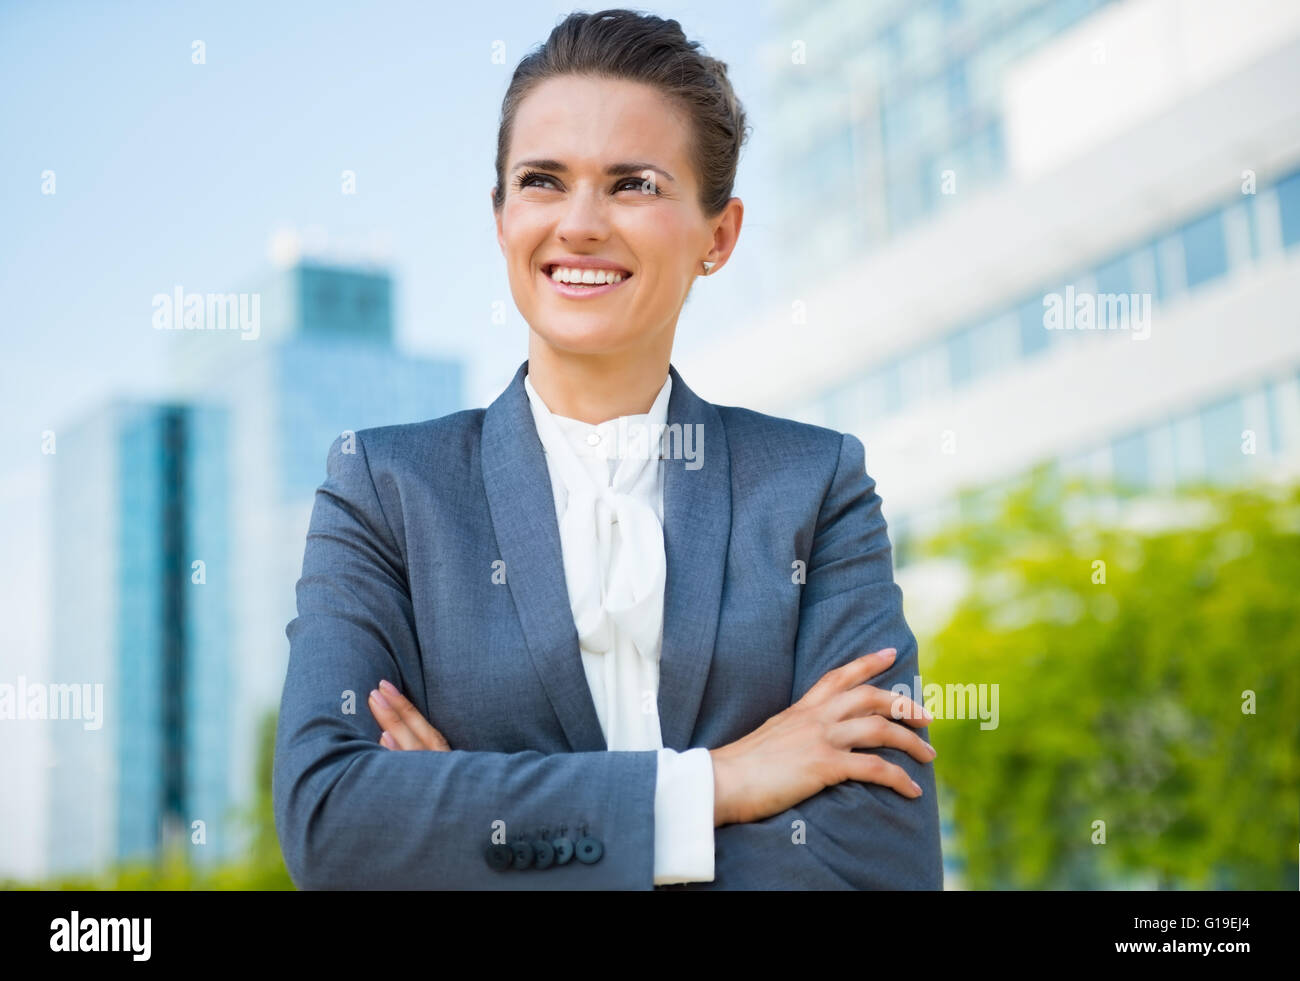 Into the ultra-modern business trends. Smiling business woman in modern office district looking into the distance - Stock Image